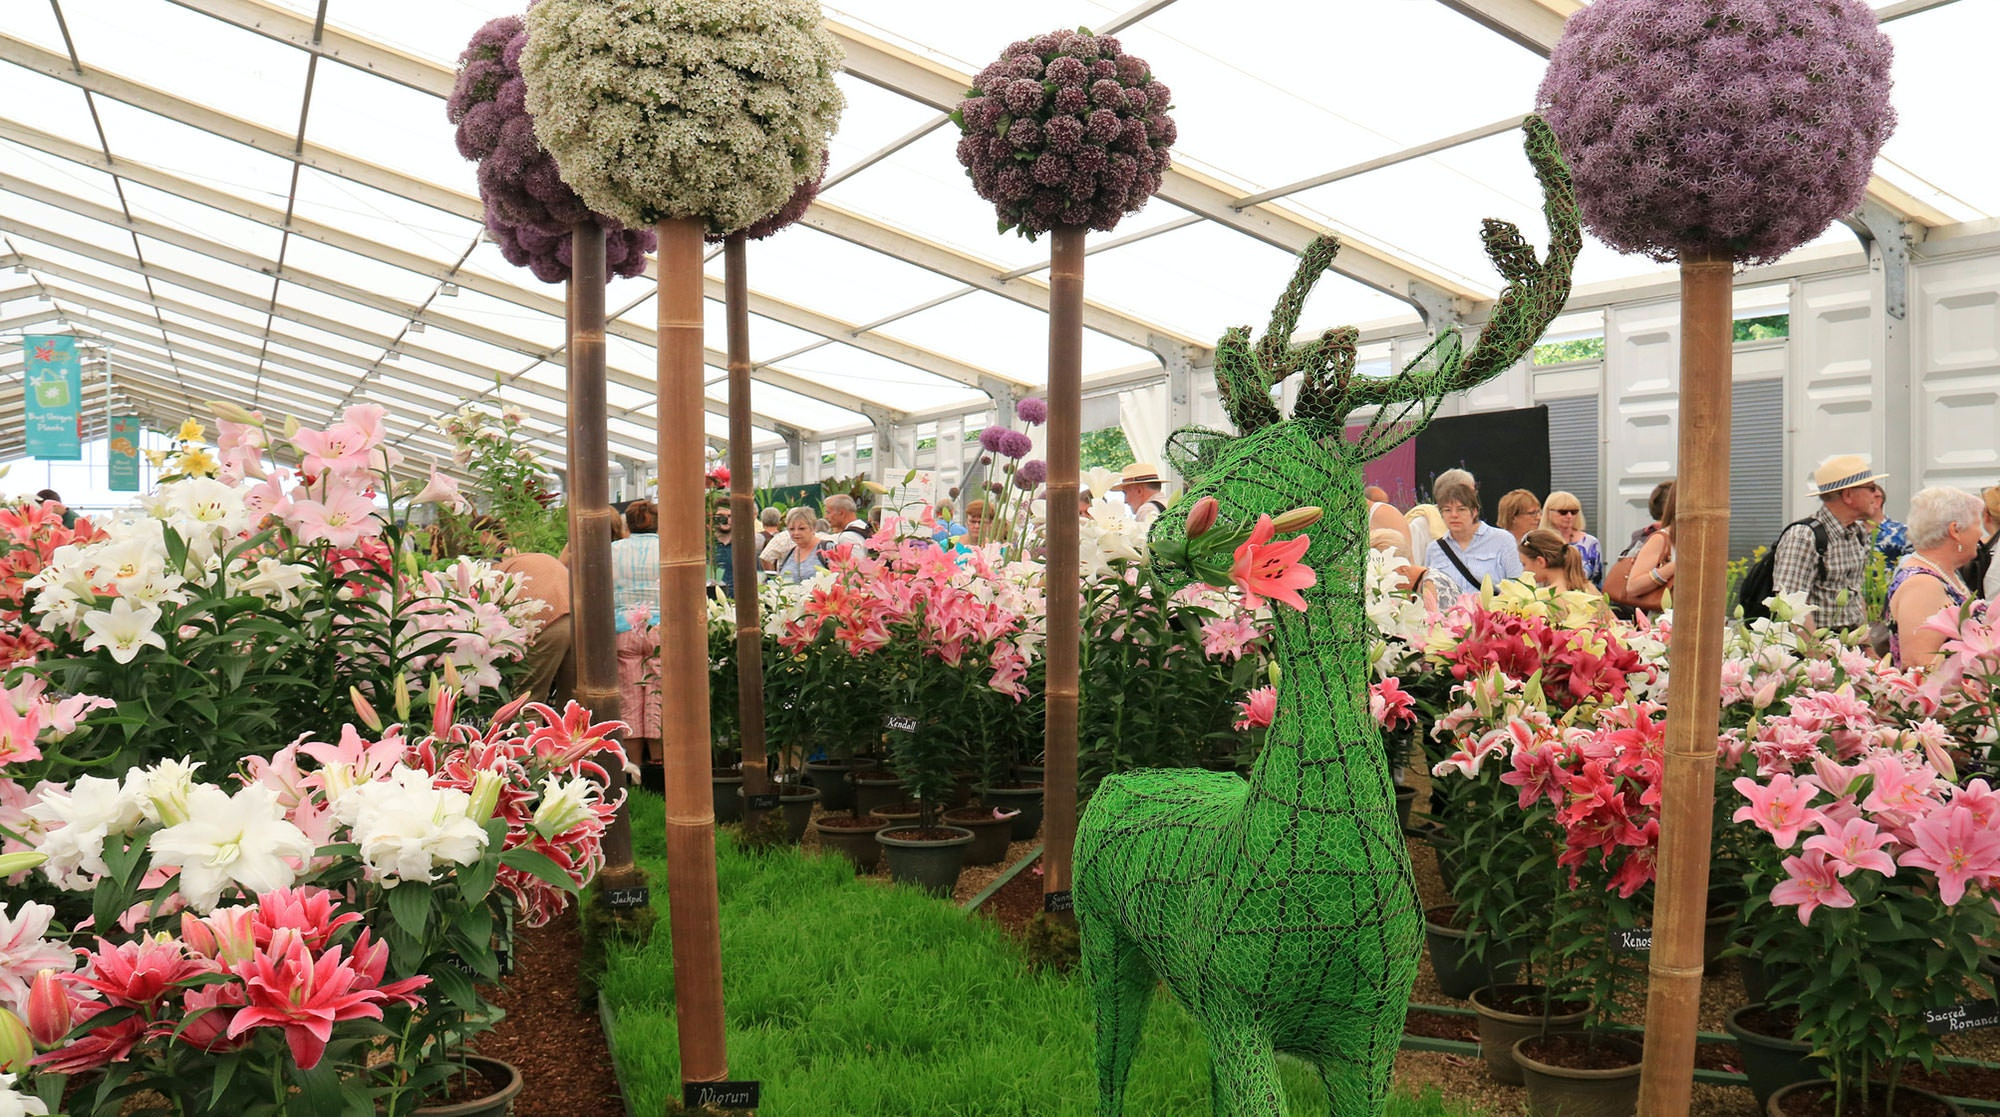 Where to stay for hampton court palace flower show a curated guide by experts the plum guide - Hampton court flower show ...